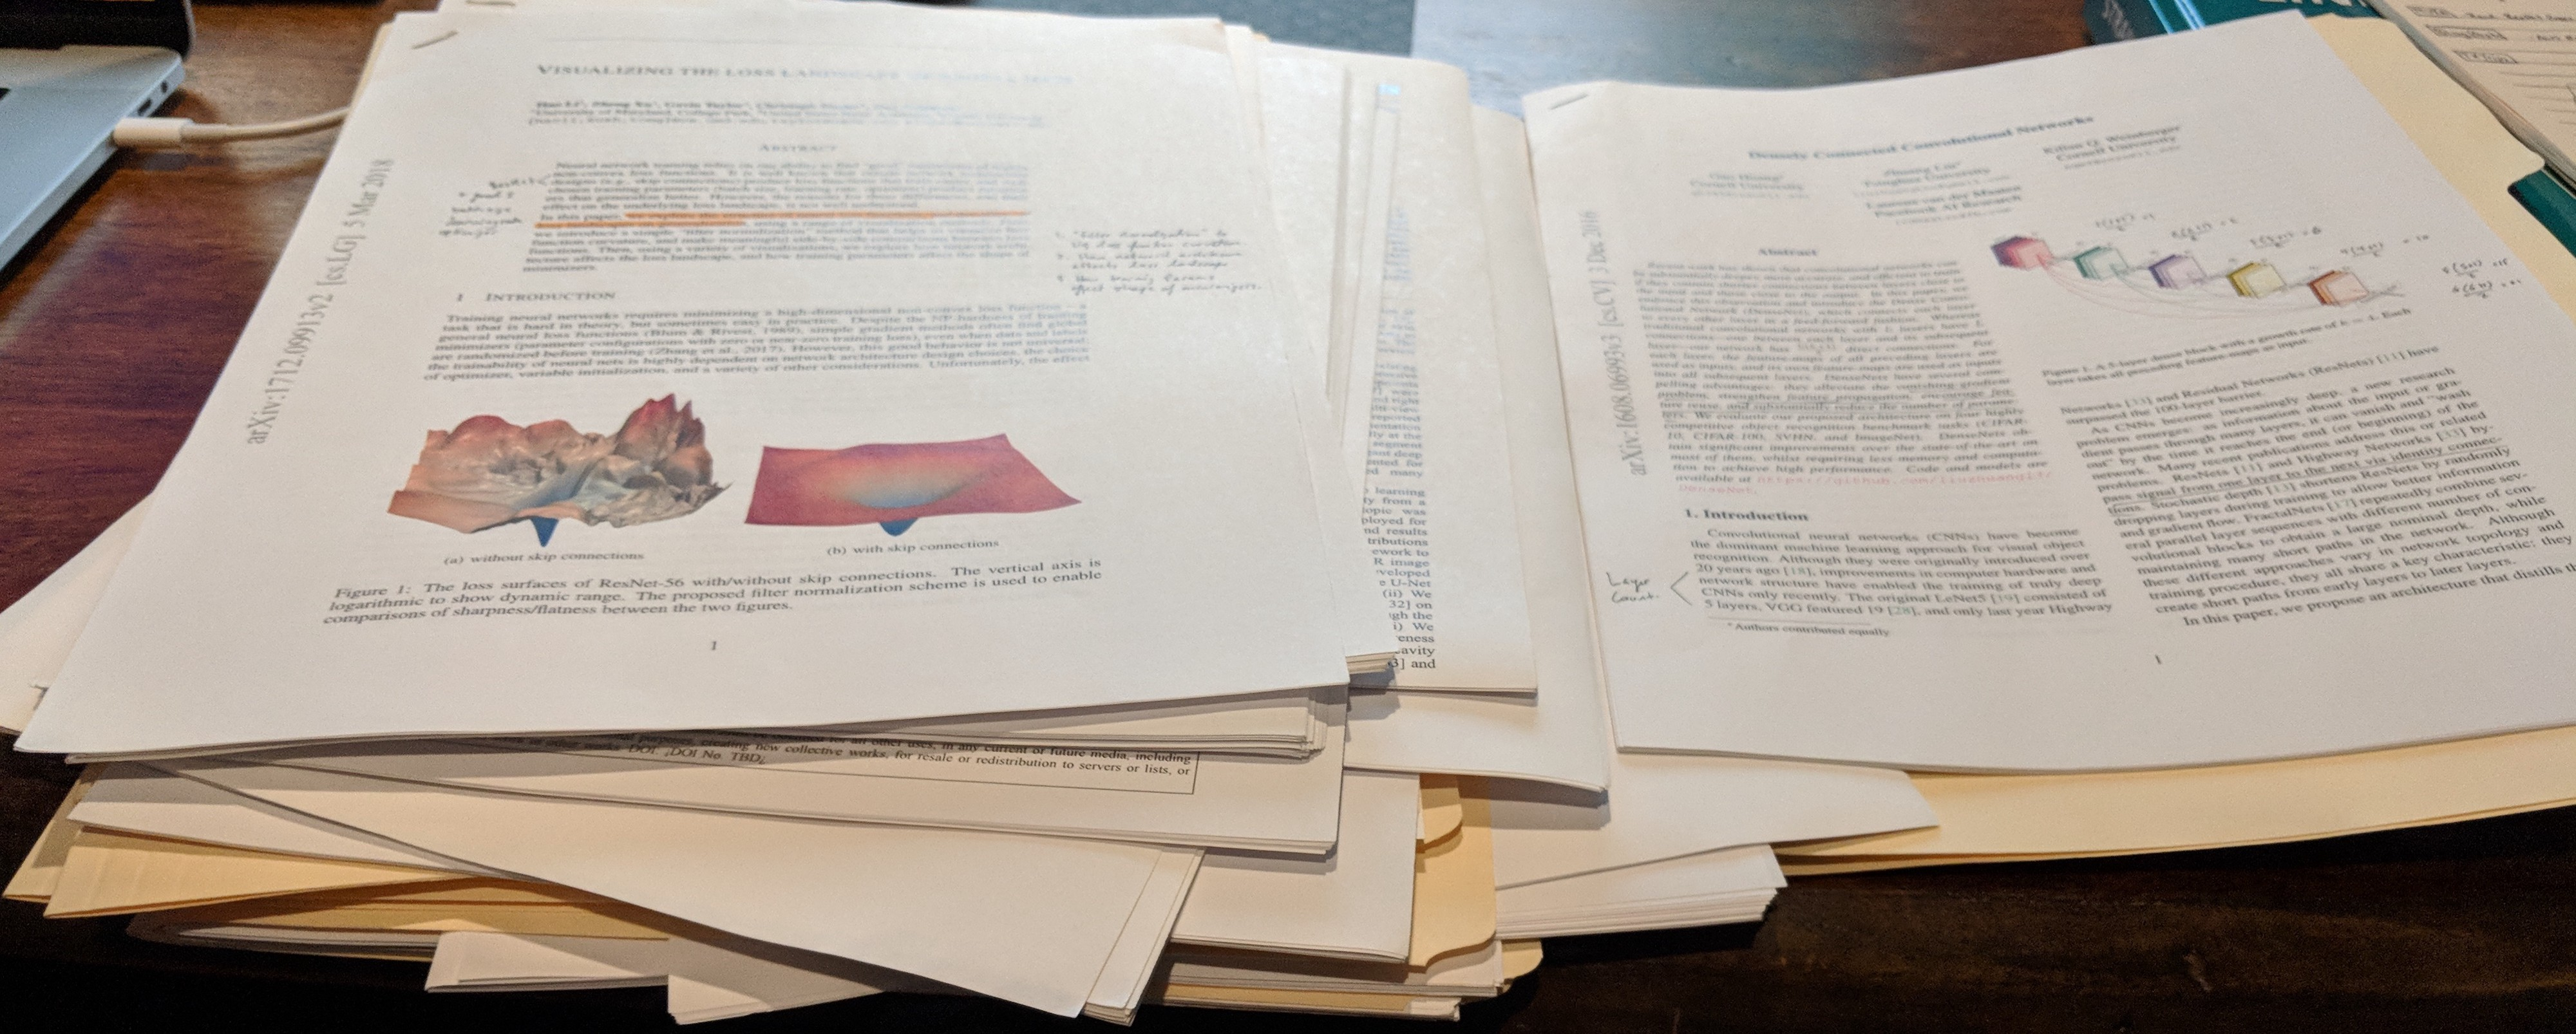 Research papers on help desk